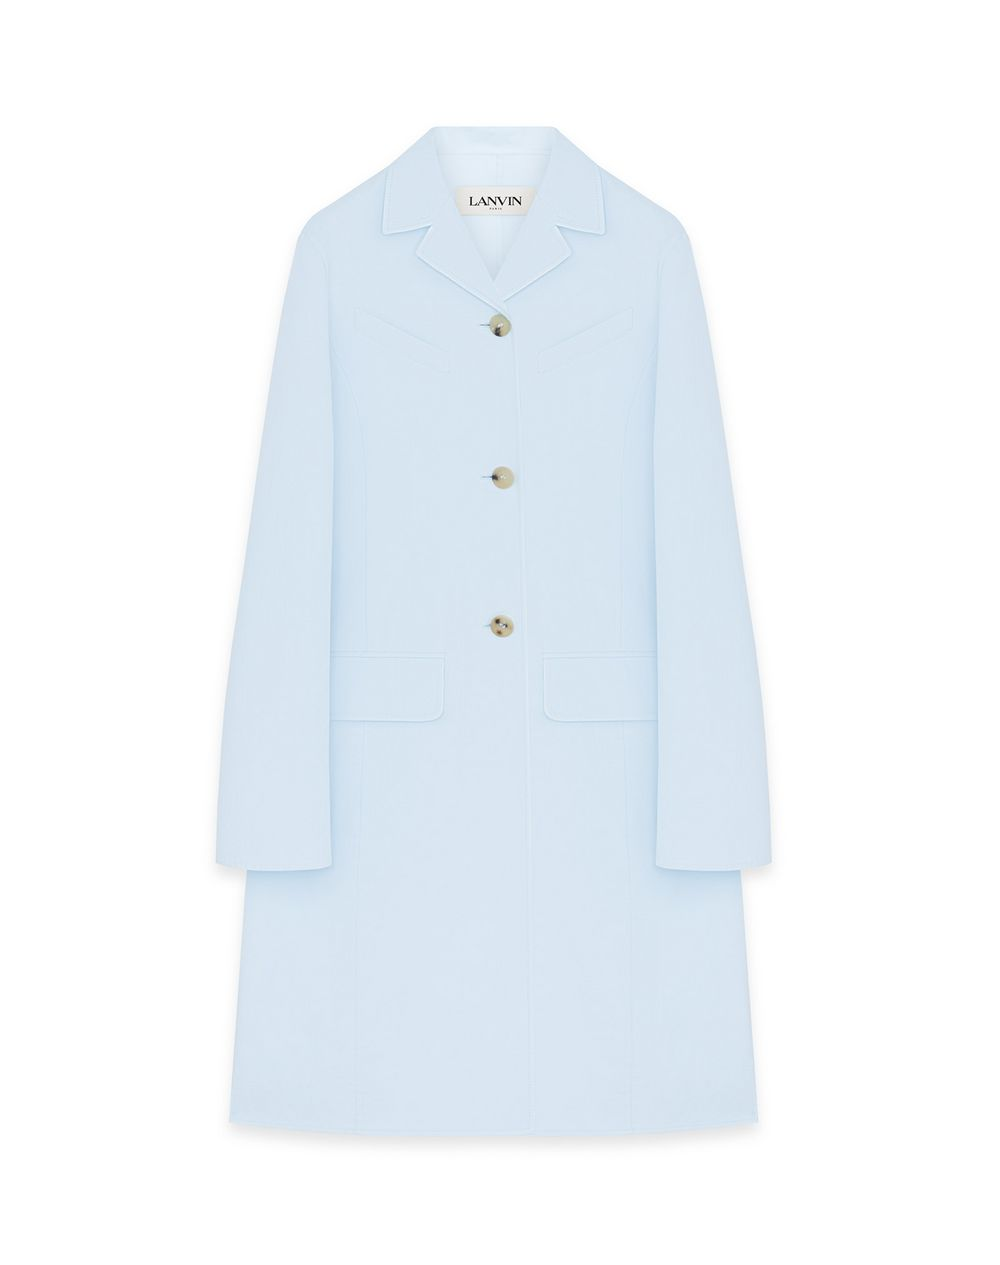 WAISTED TAILORED COAT  - Lanvin